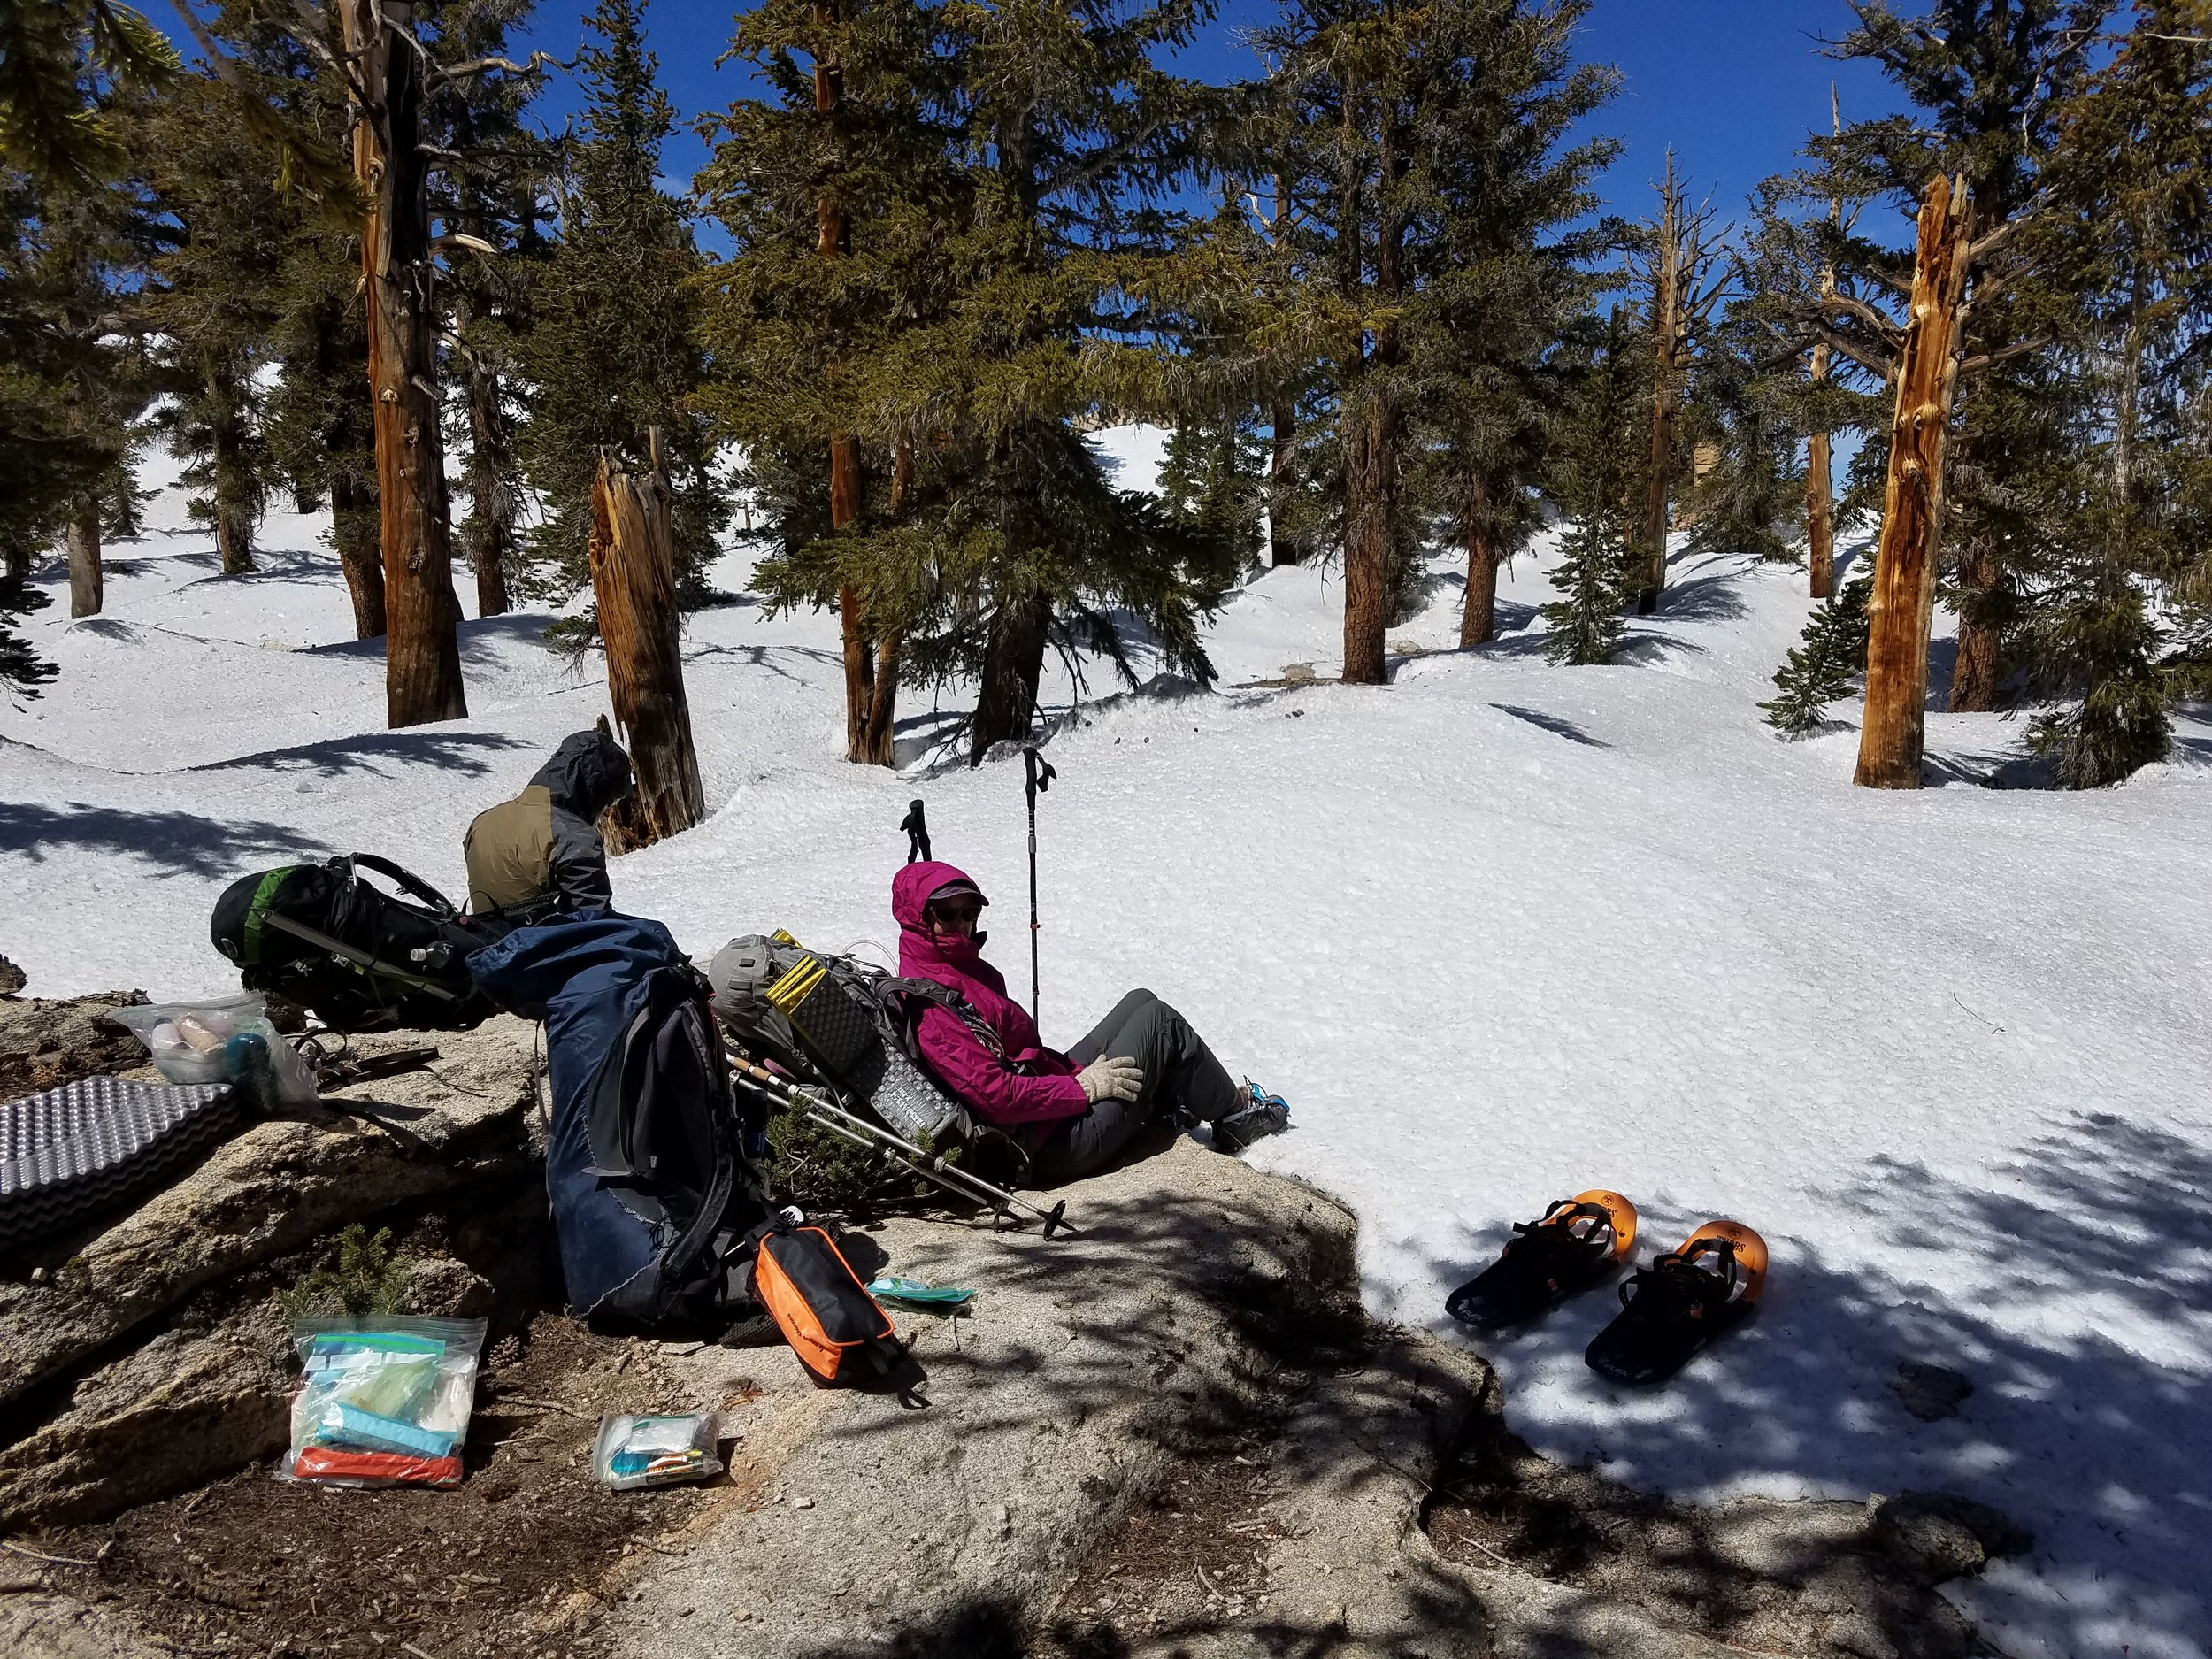 Luxurious dry rock for our lunch stop at our new highest elevation, 10,700 feet.